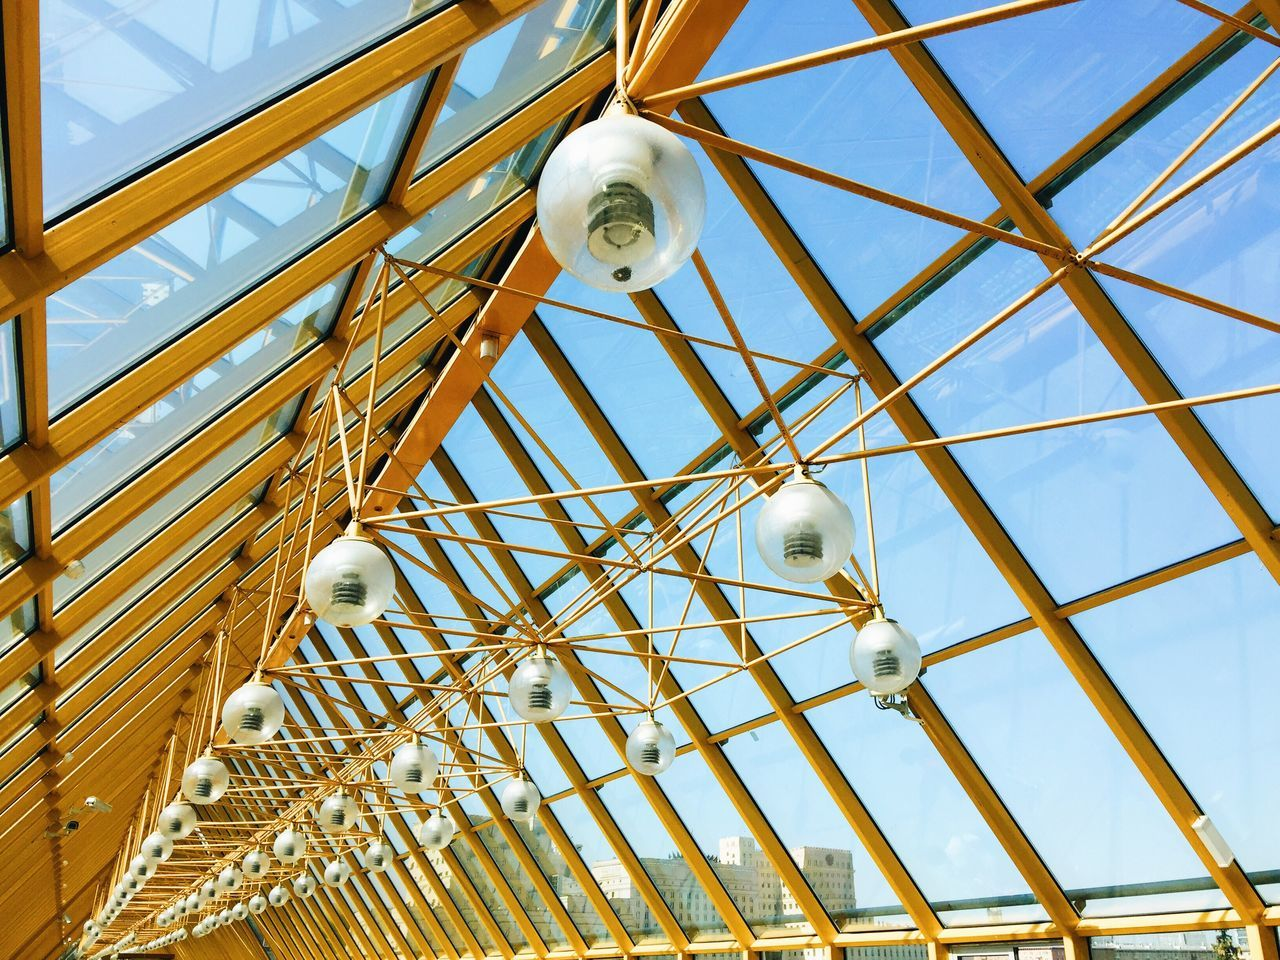 low angle view, no people, day, built structure, technology, sky, indoors, close-up, bird